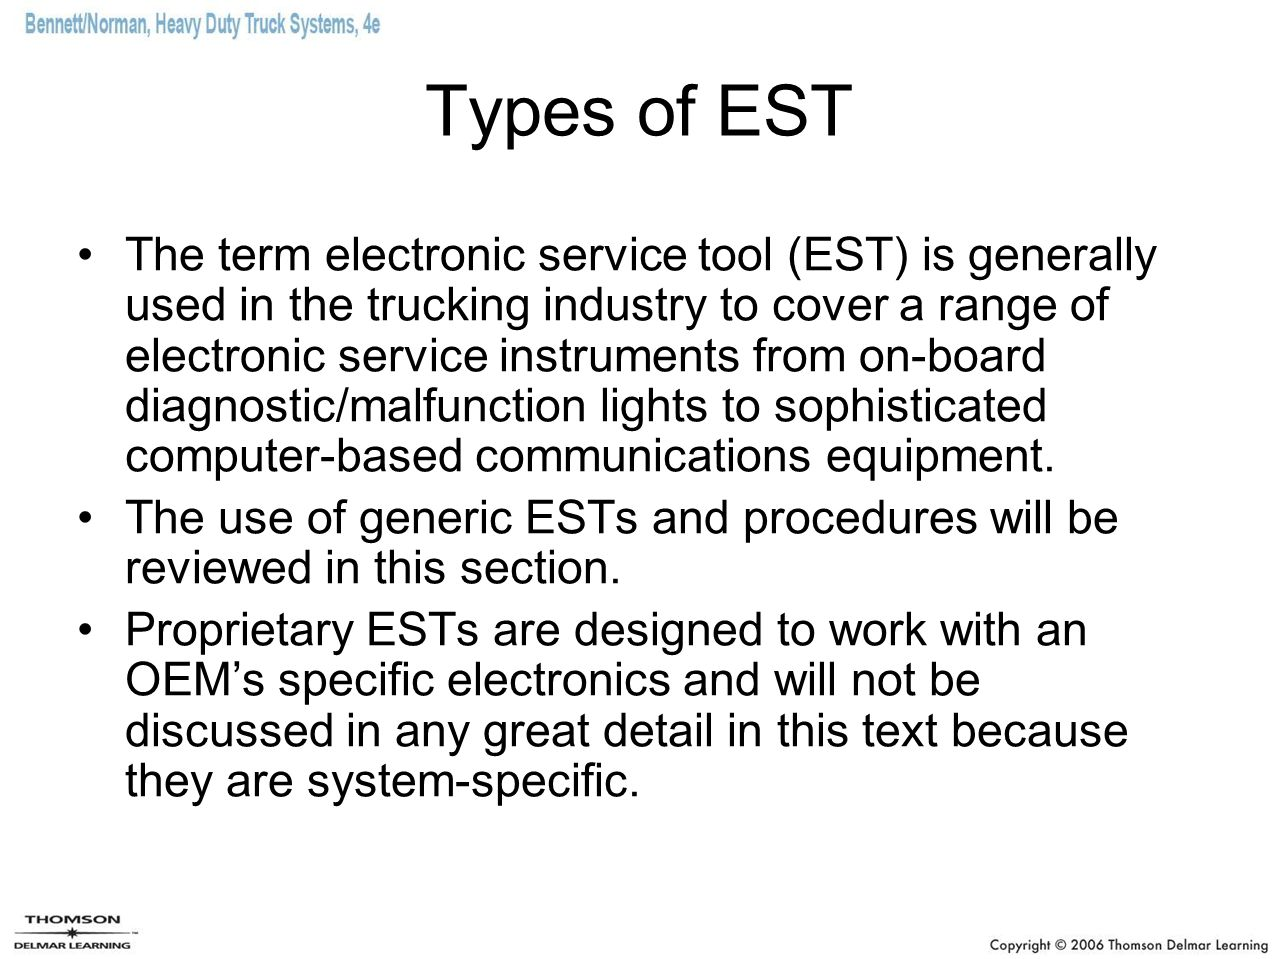 Types of EST